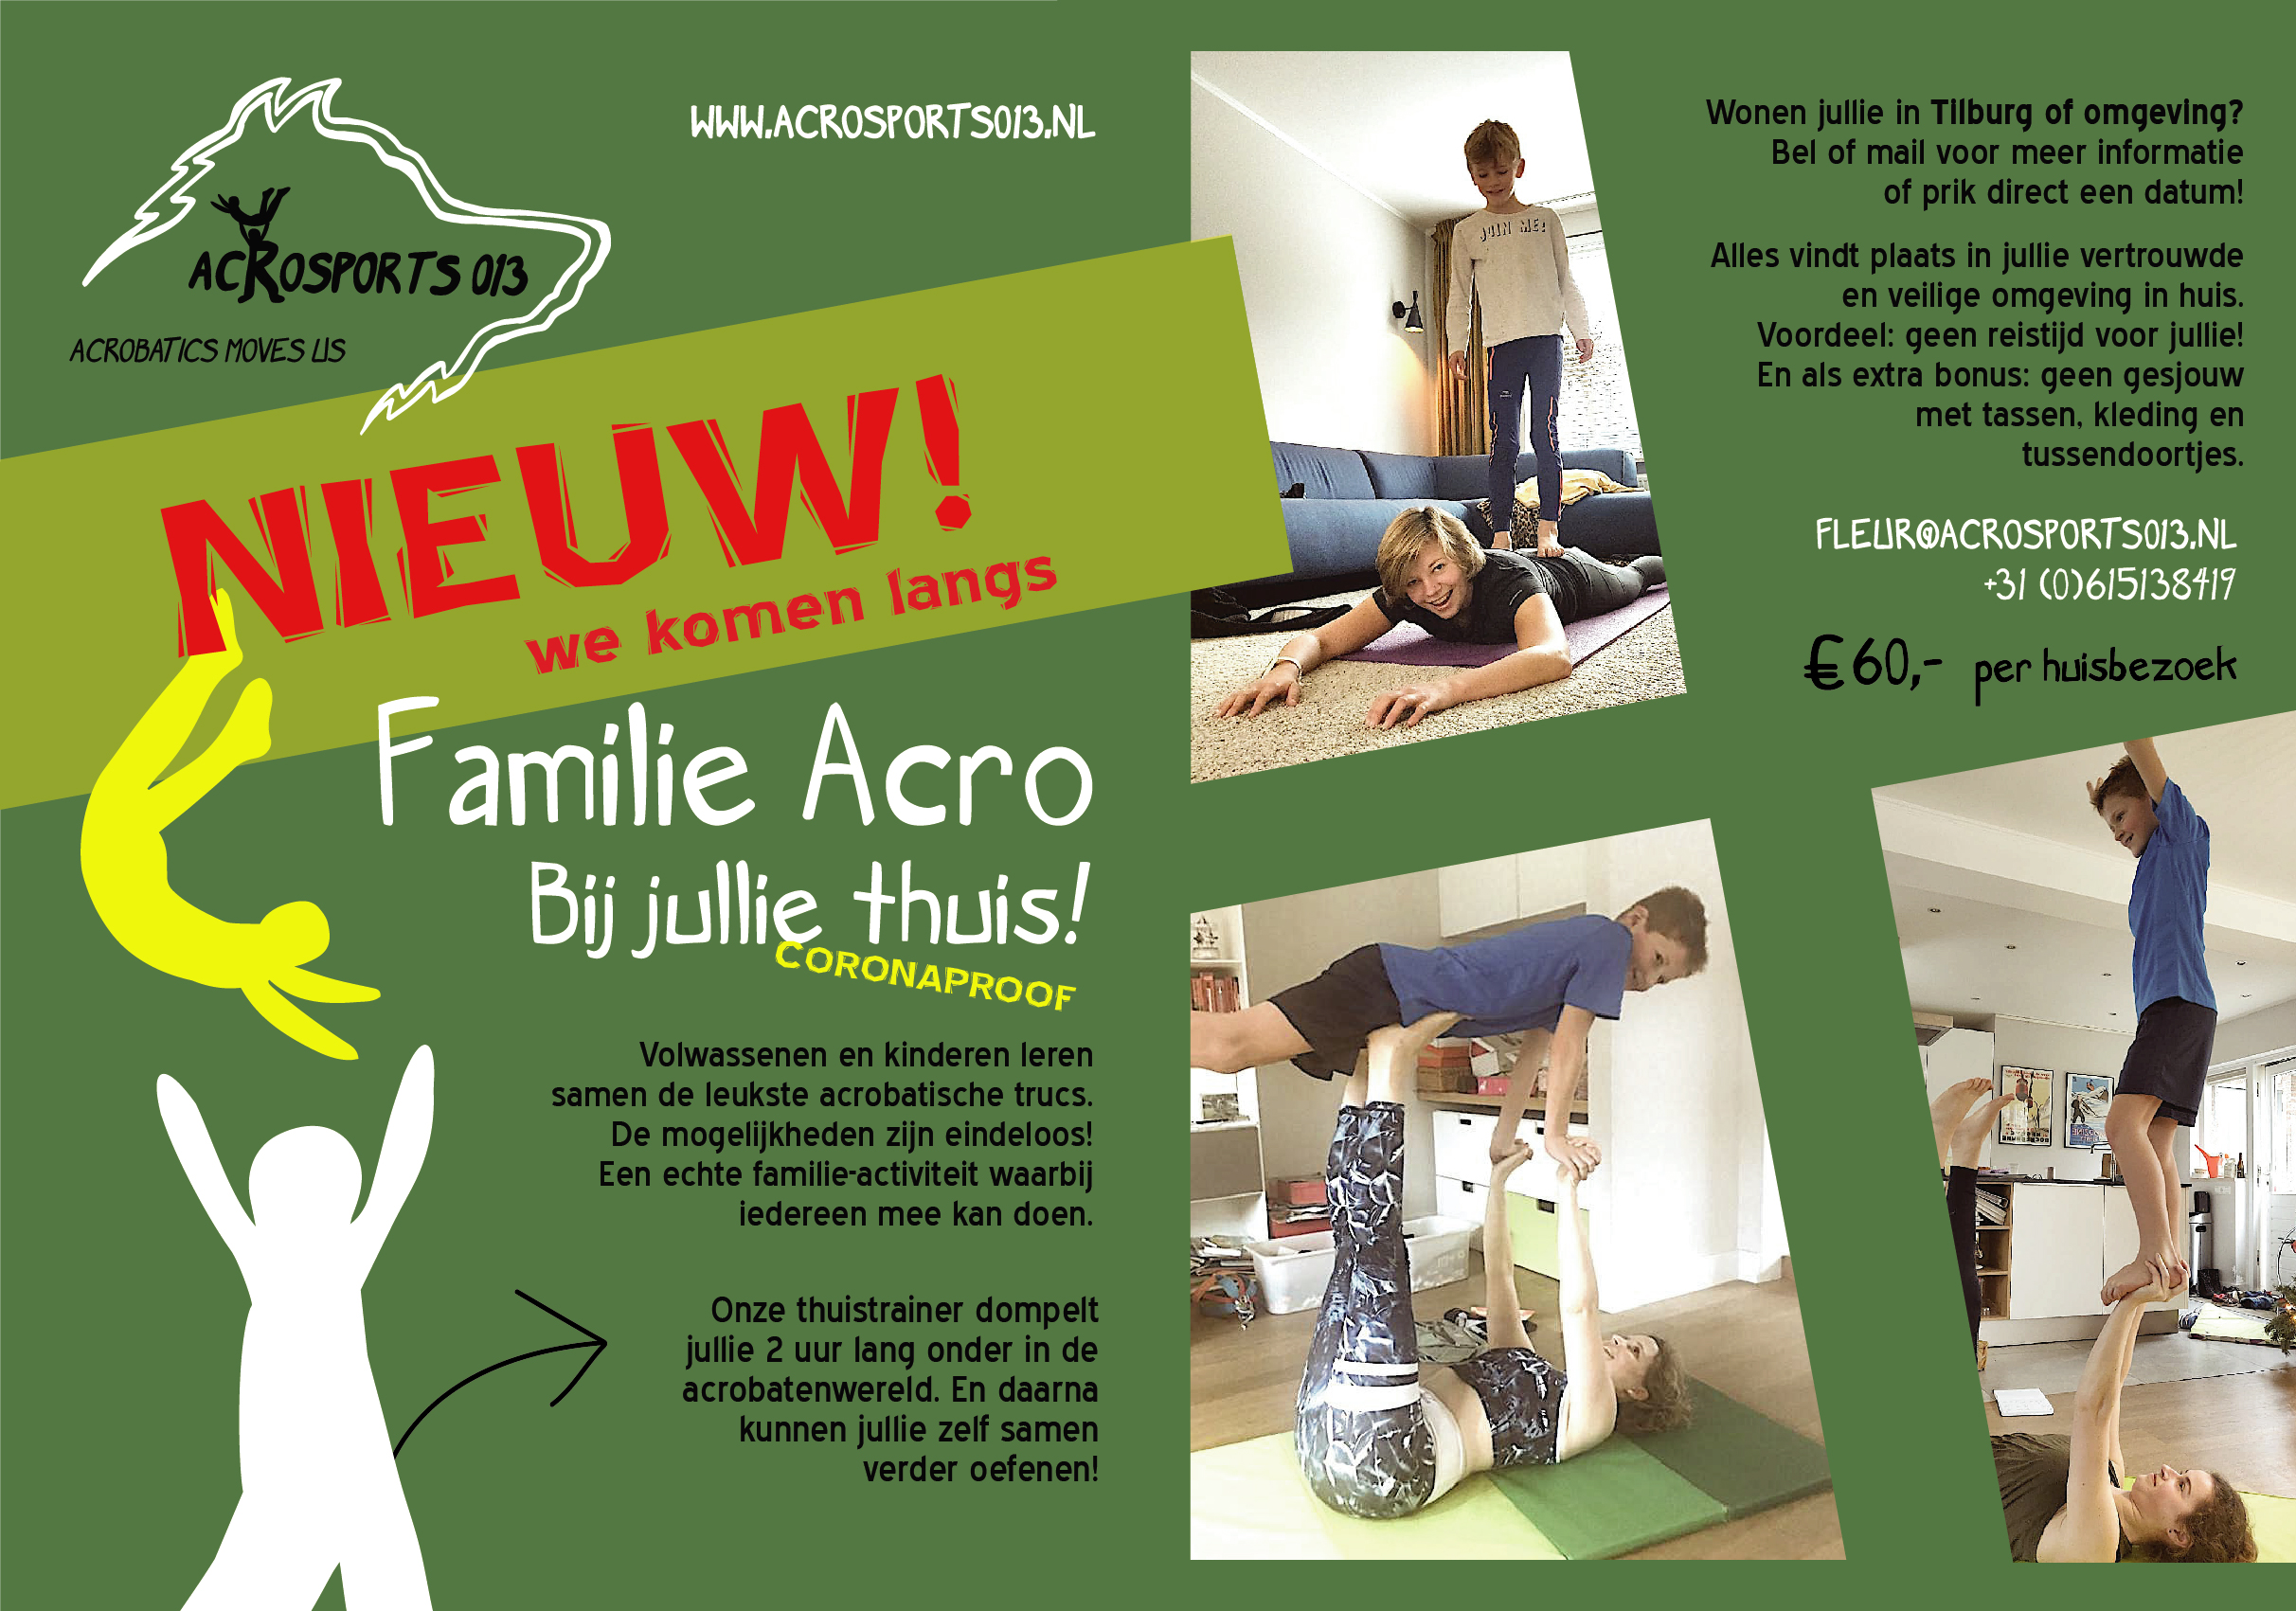 Familie Acro bij jullie thuis Coronaproof! (flyer thuissessies)